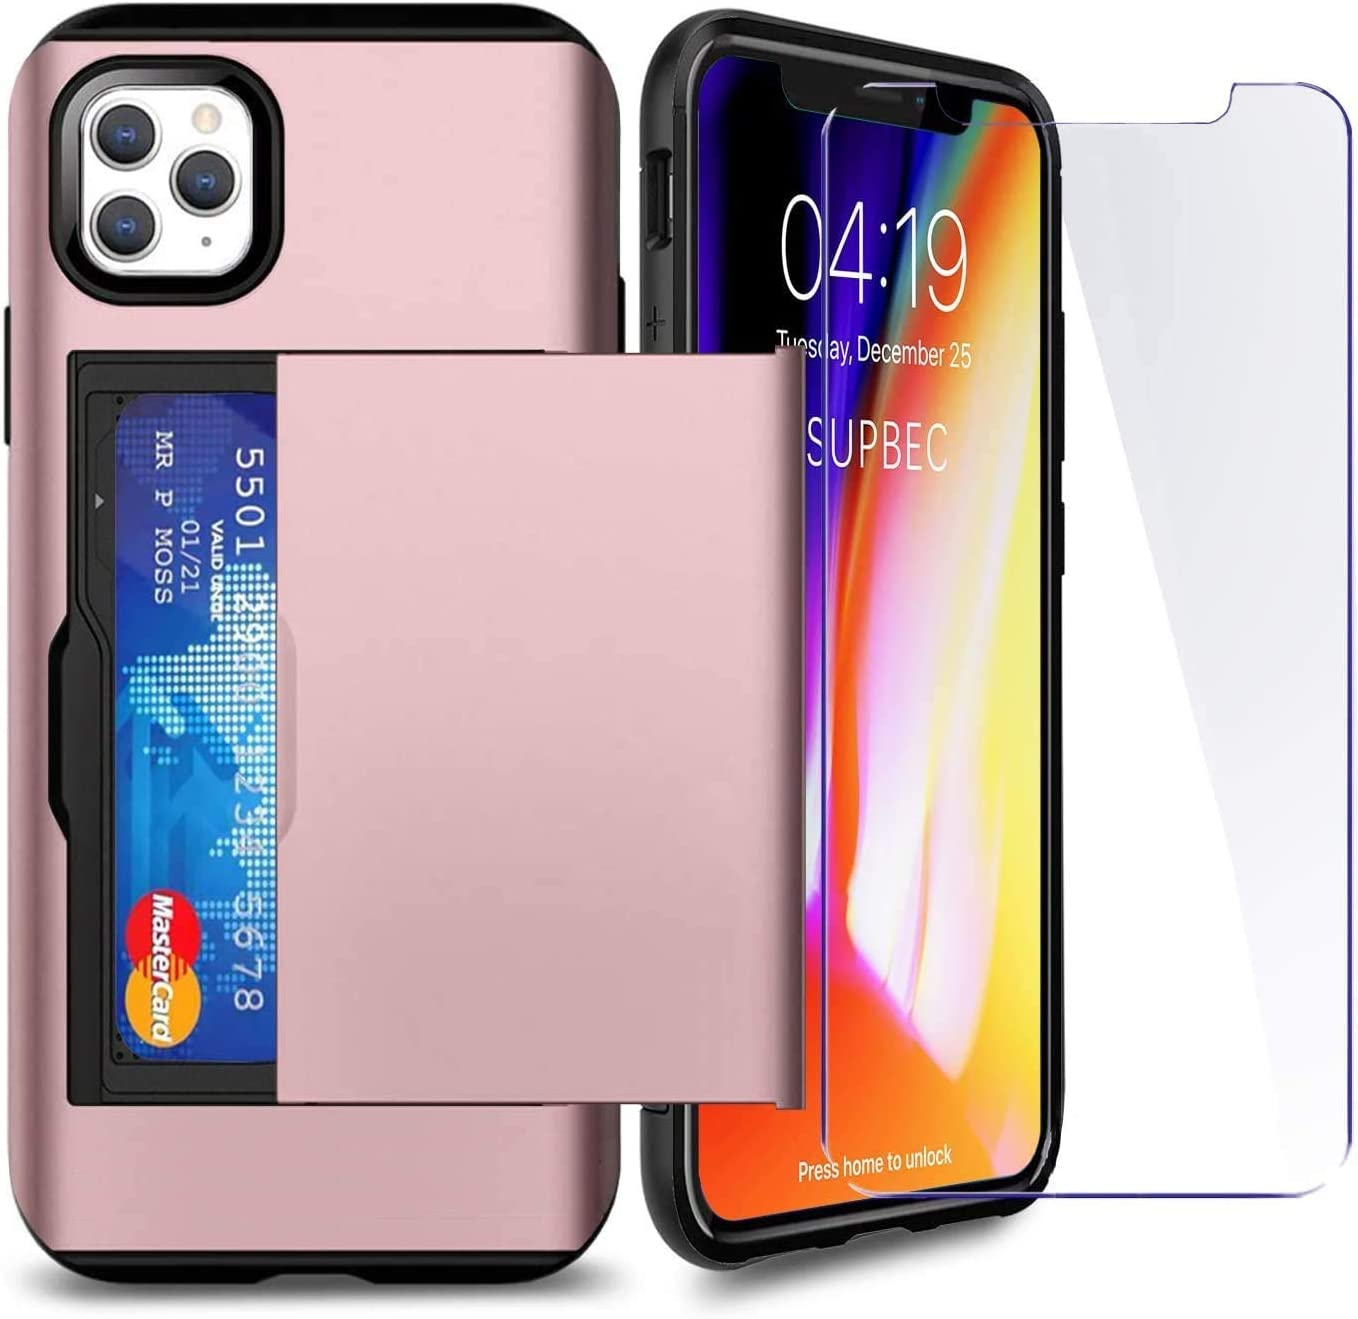 SUPBEC Compatible for iPhone 11 Pro Max Case with Card Holder and[ Screen Protector Tempered Glass x2Pcs][ Protective Series] Shockproof Silicone for iPhone 11 ProMax Wallet Case Cover-Rose Gold-6.5